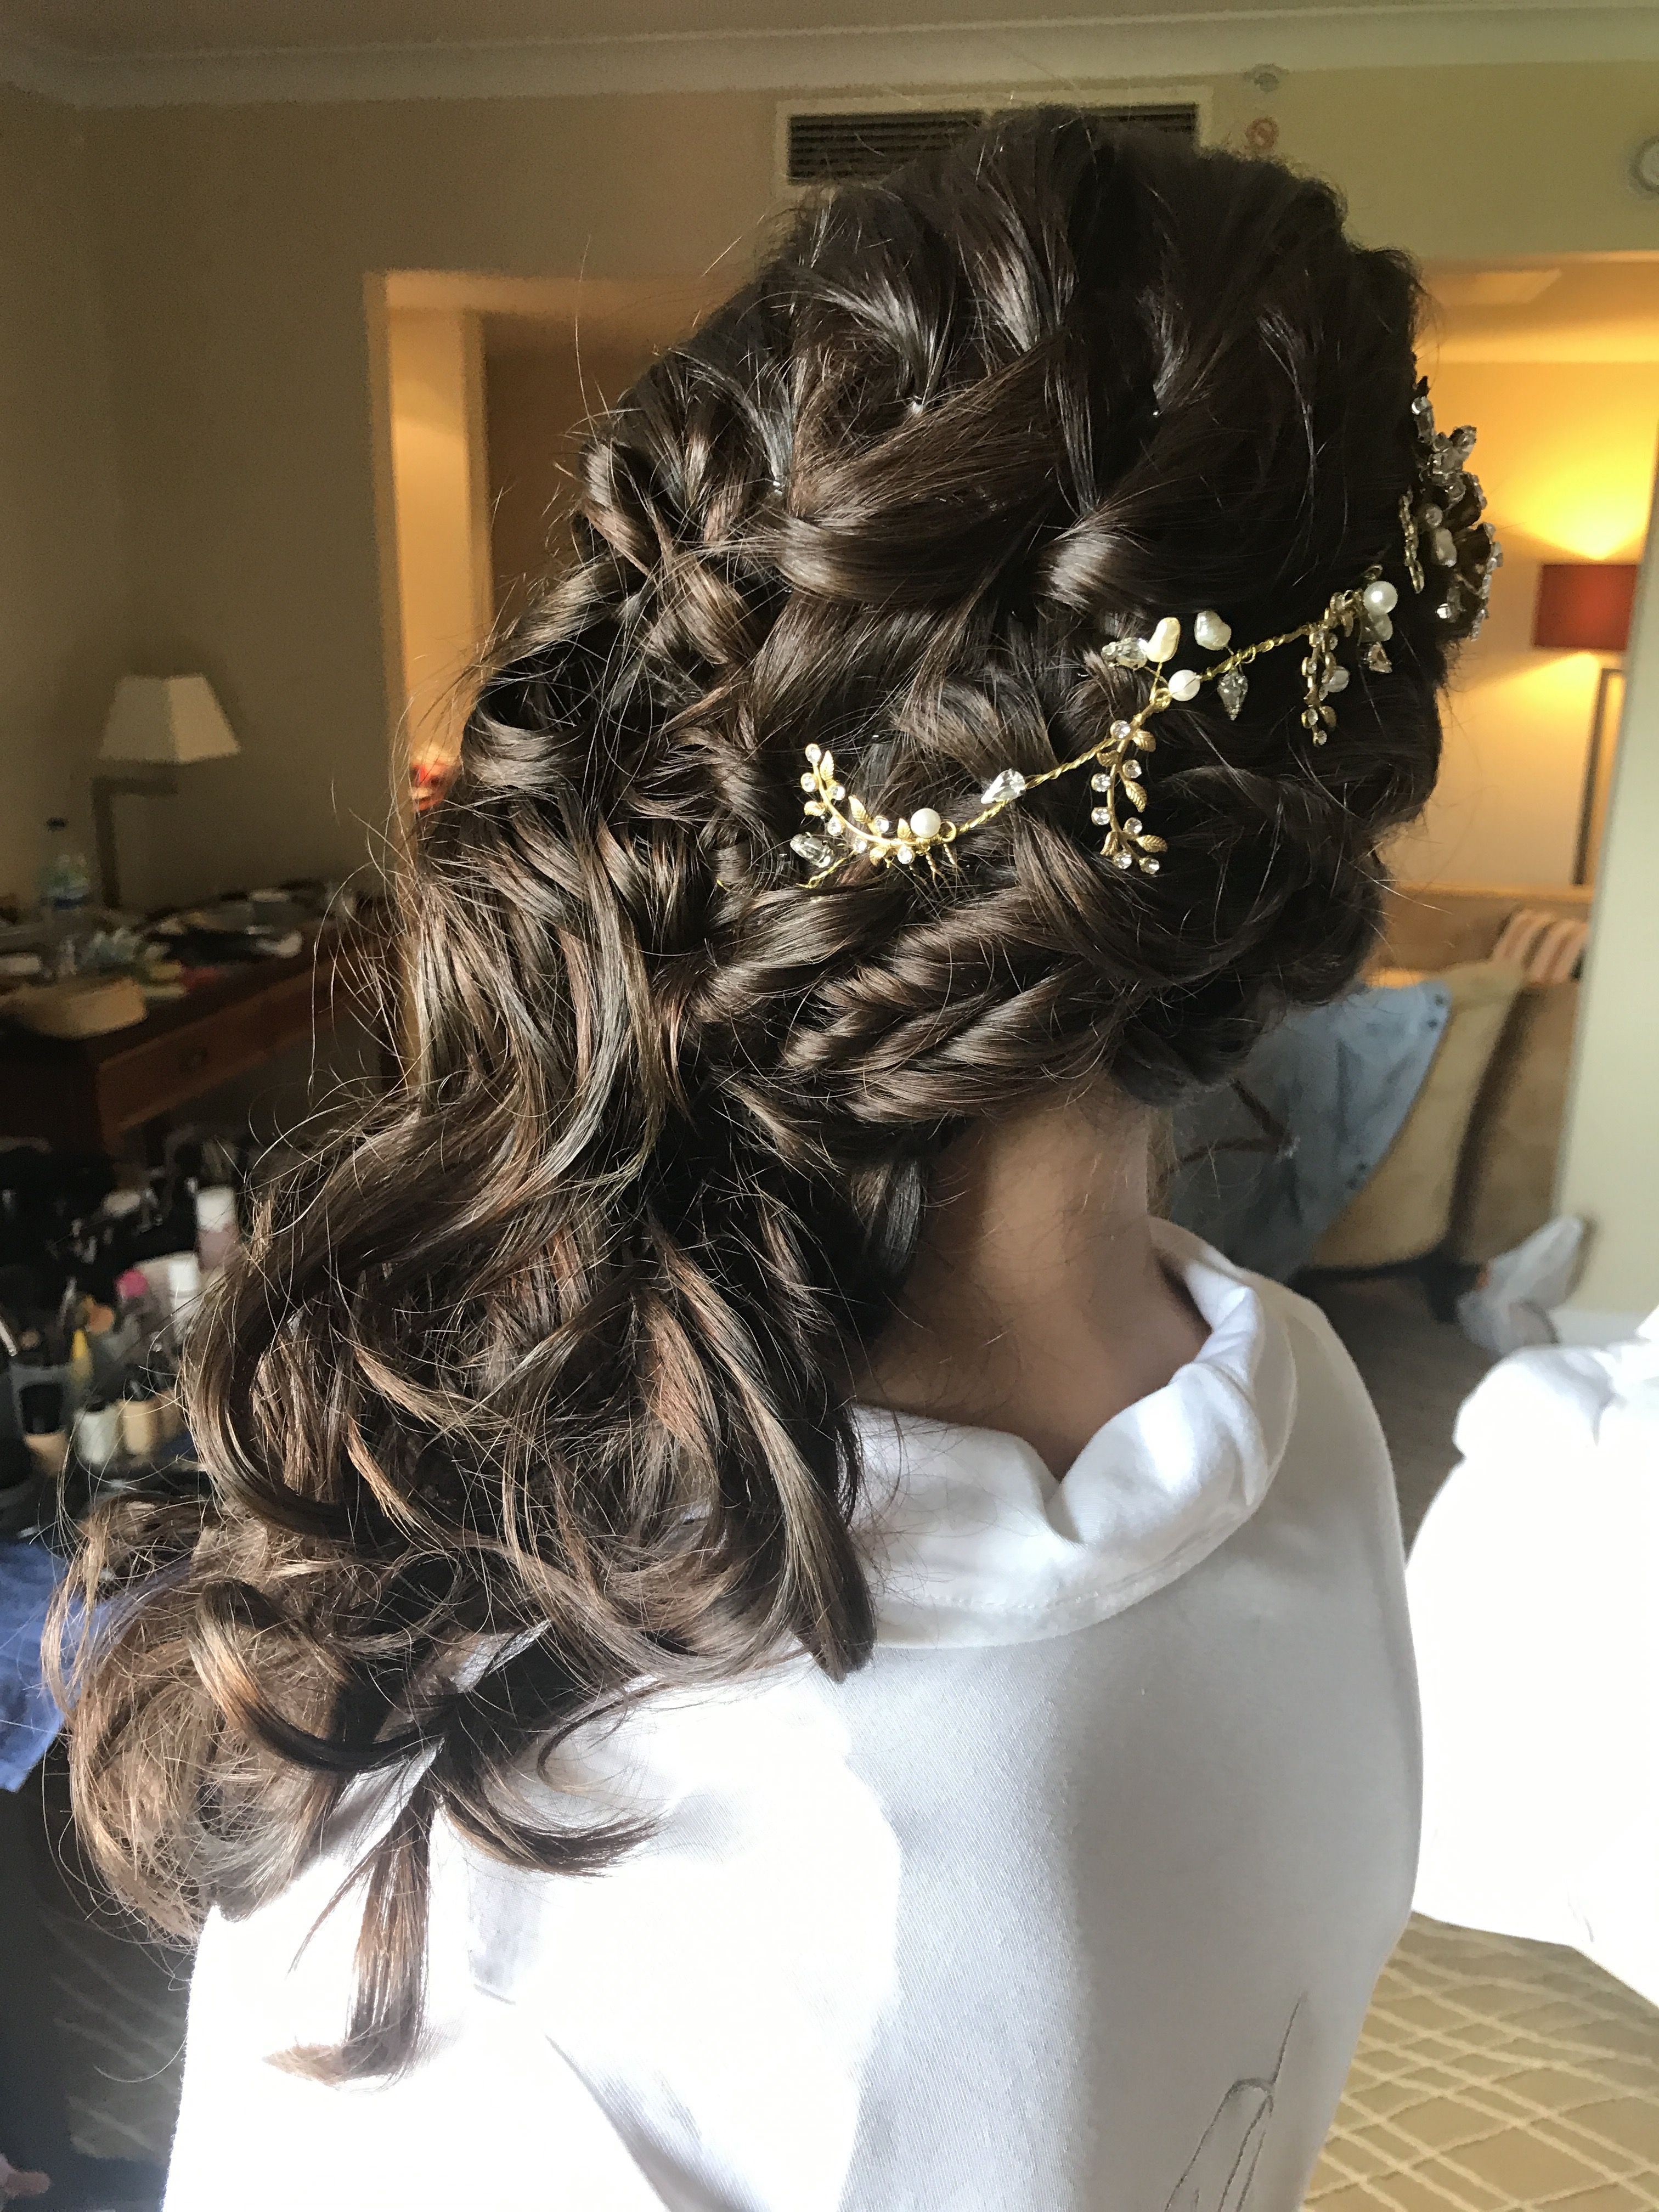 Braided And Weaved Wedding Hair Extensions Hair Bridal Hair And Makeup Wedding Hair Extensions